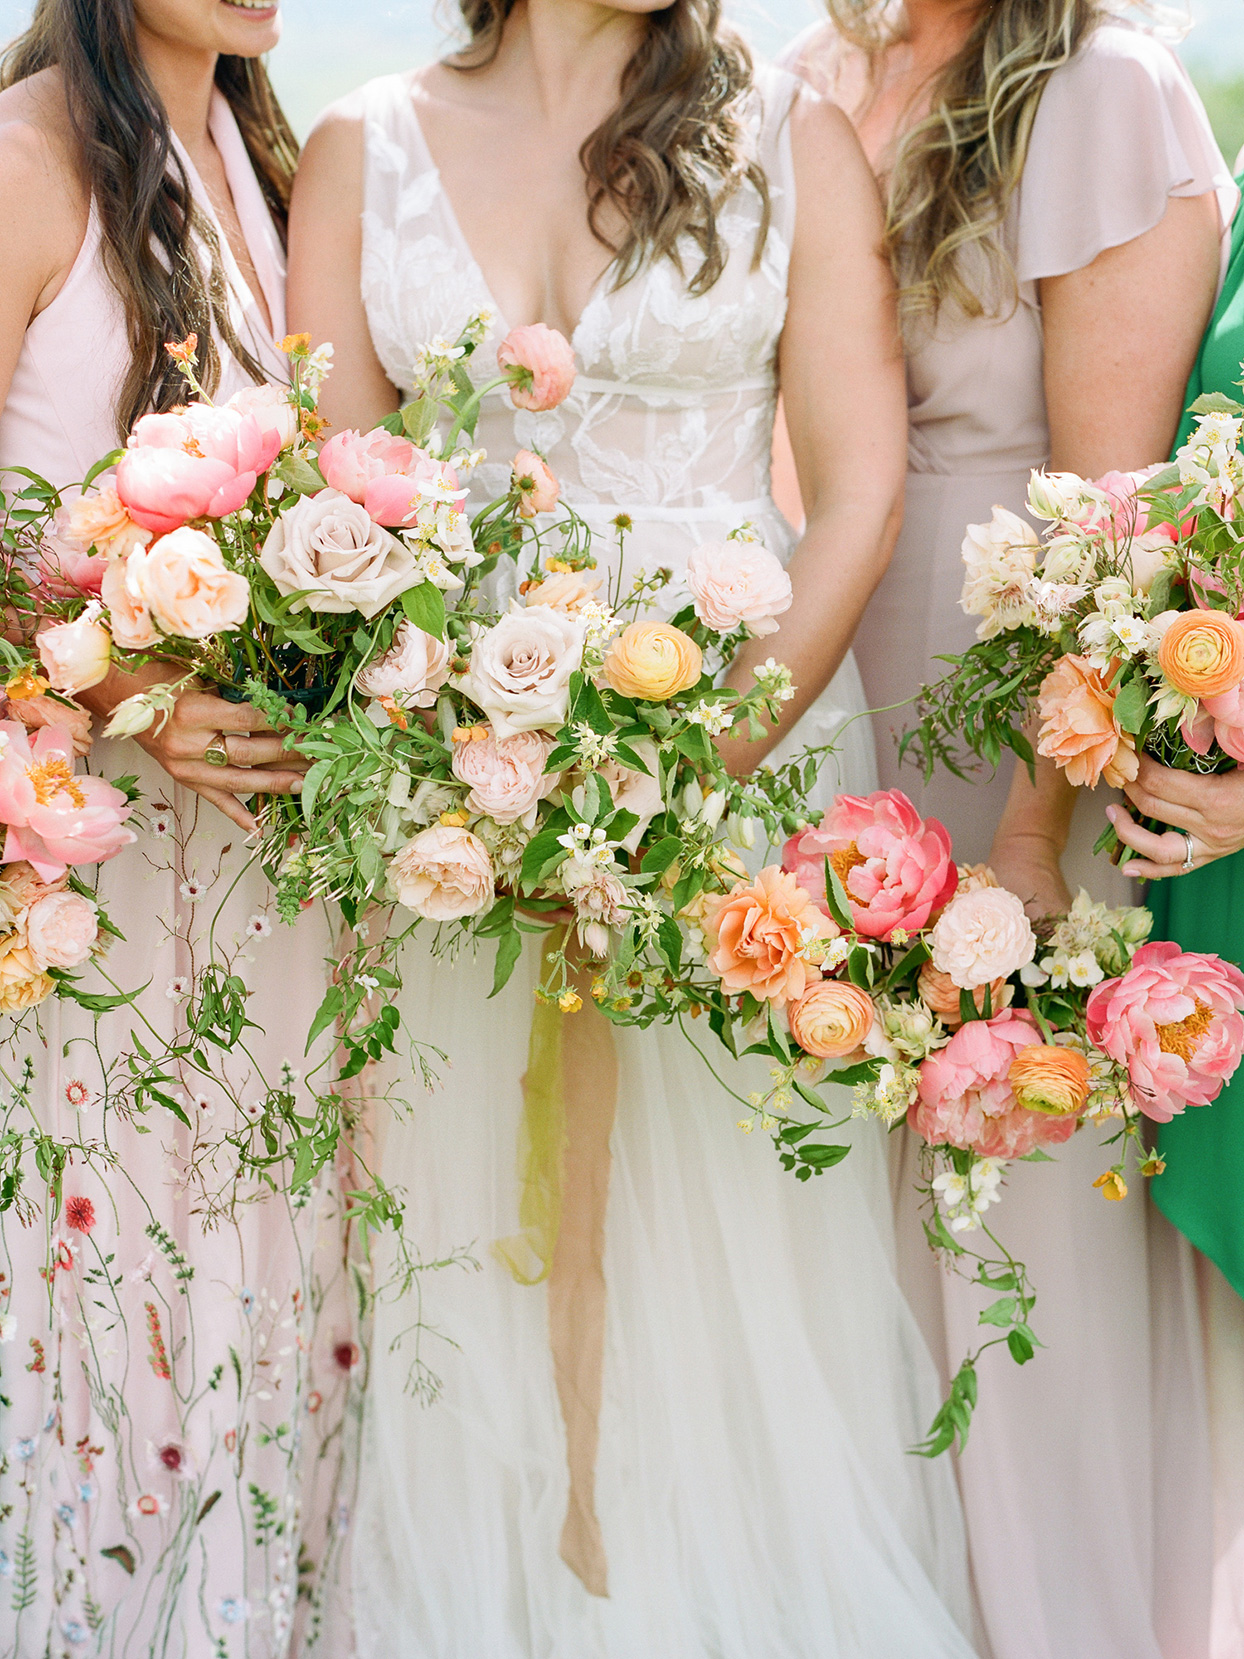 logan conor wedding bouquets orange and pink